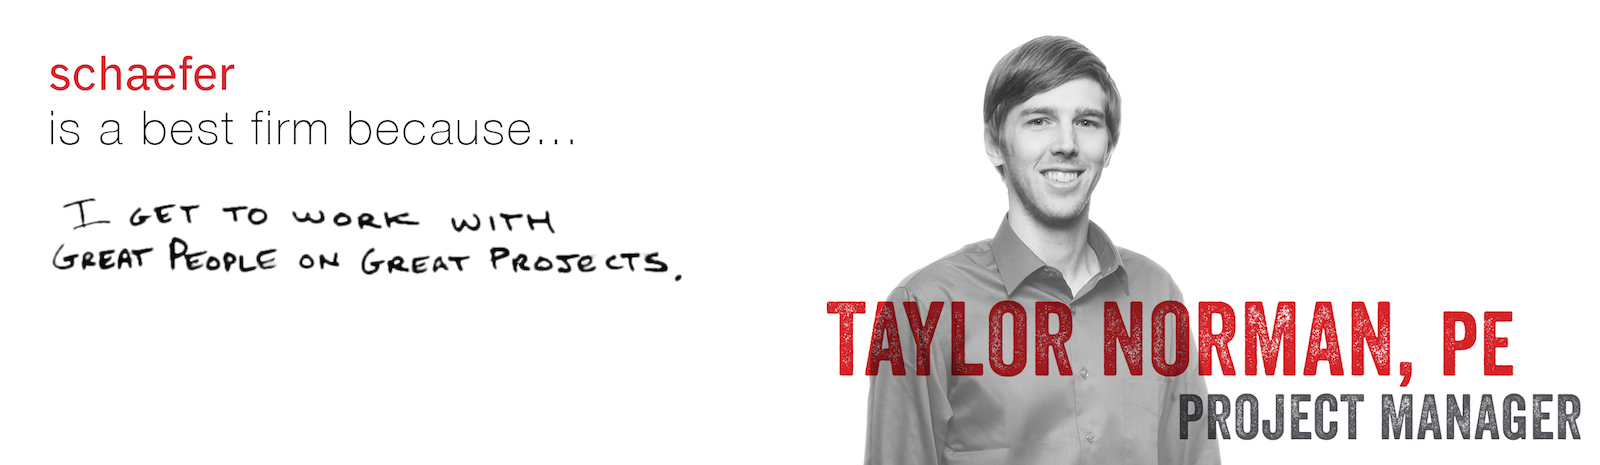 Careers Testimonial - Taylor Norman